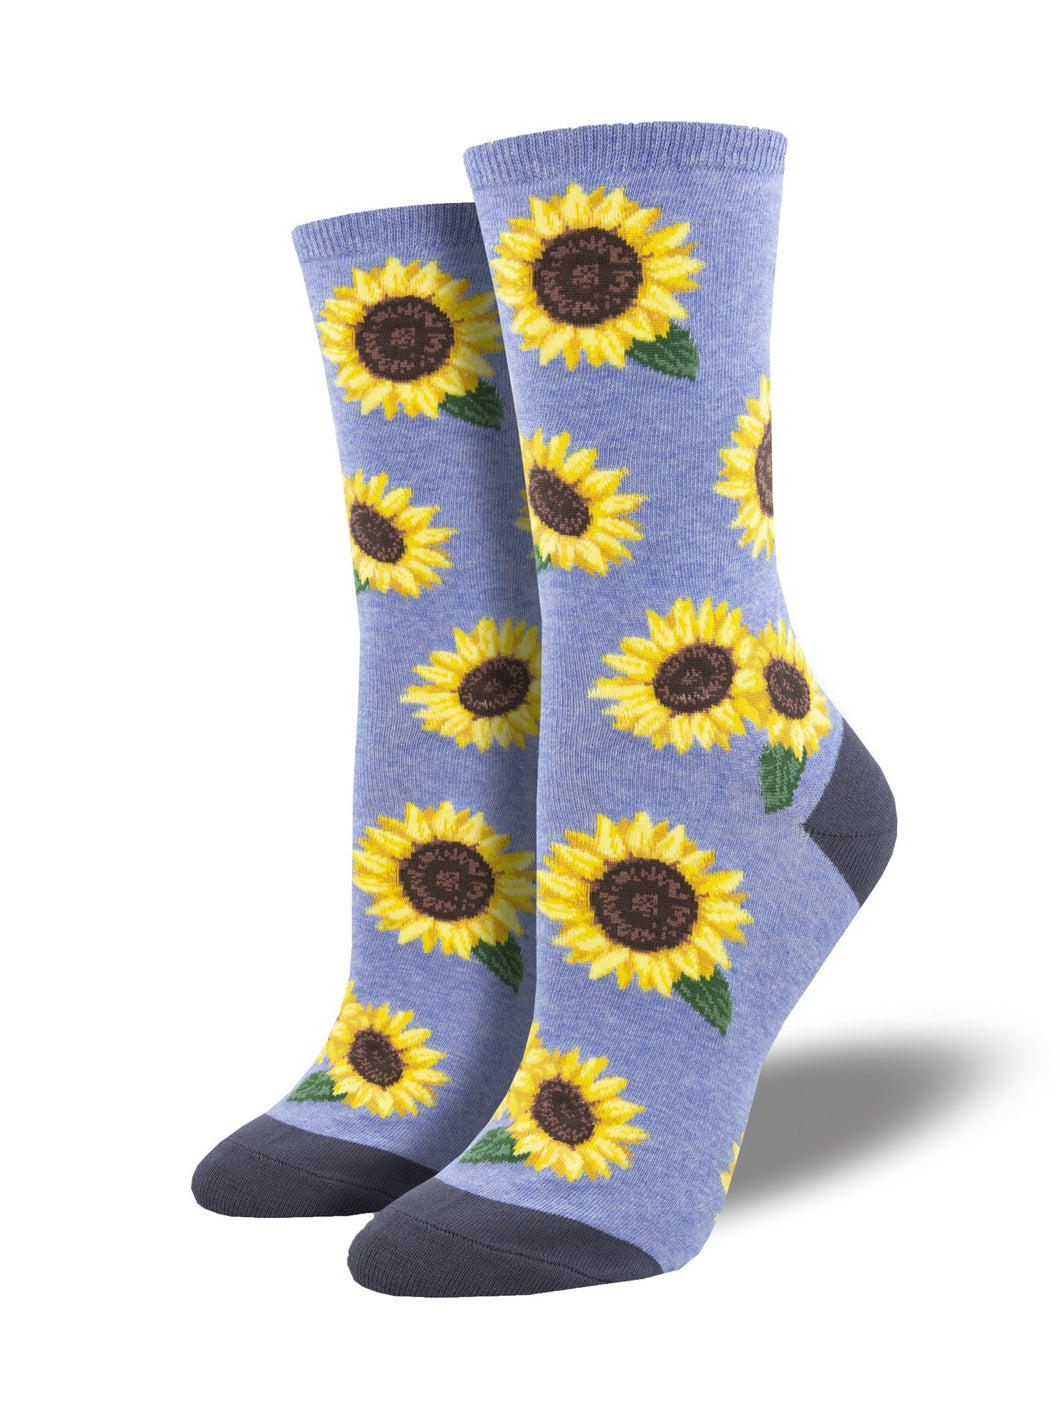 Sunflower women's socks blue